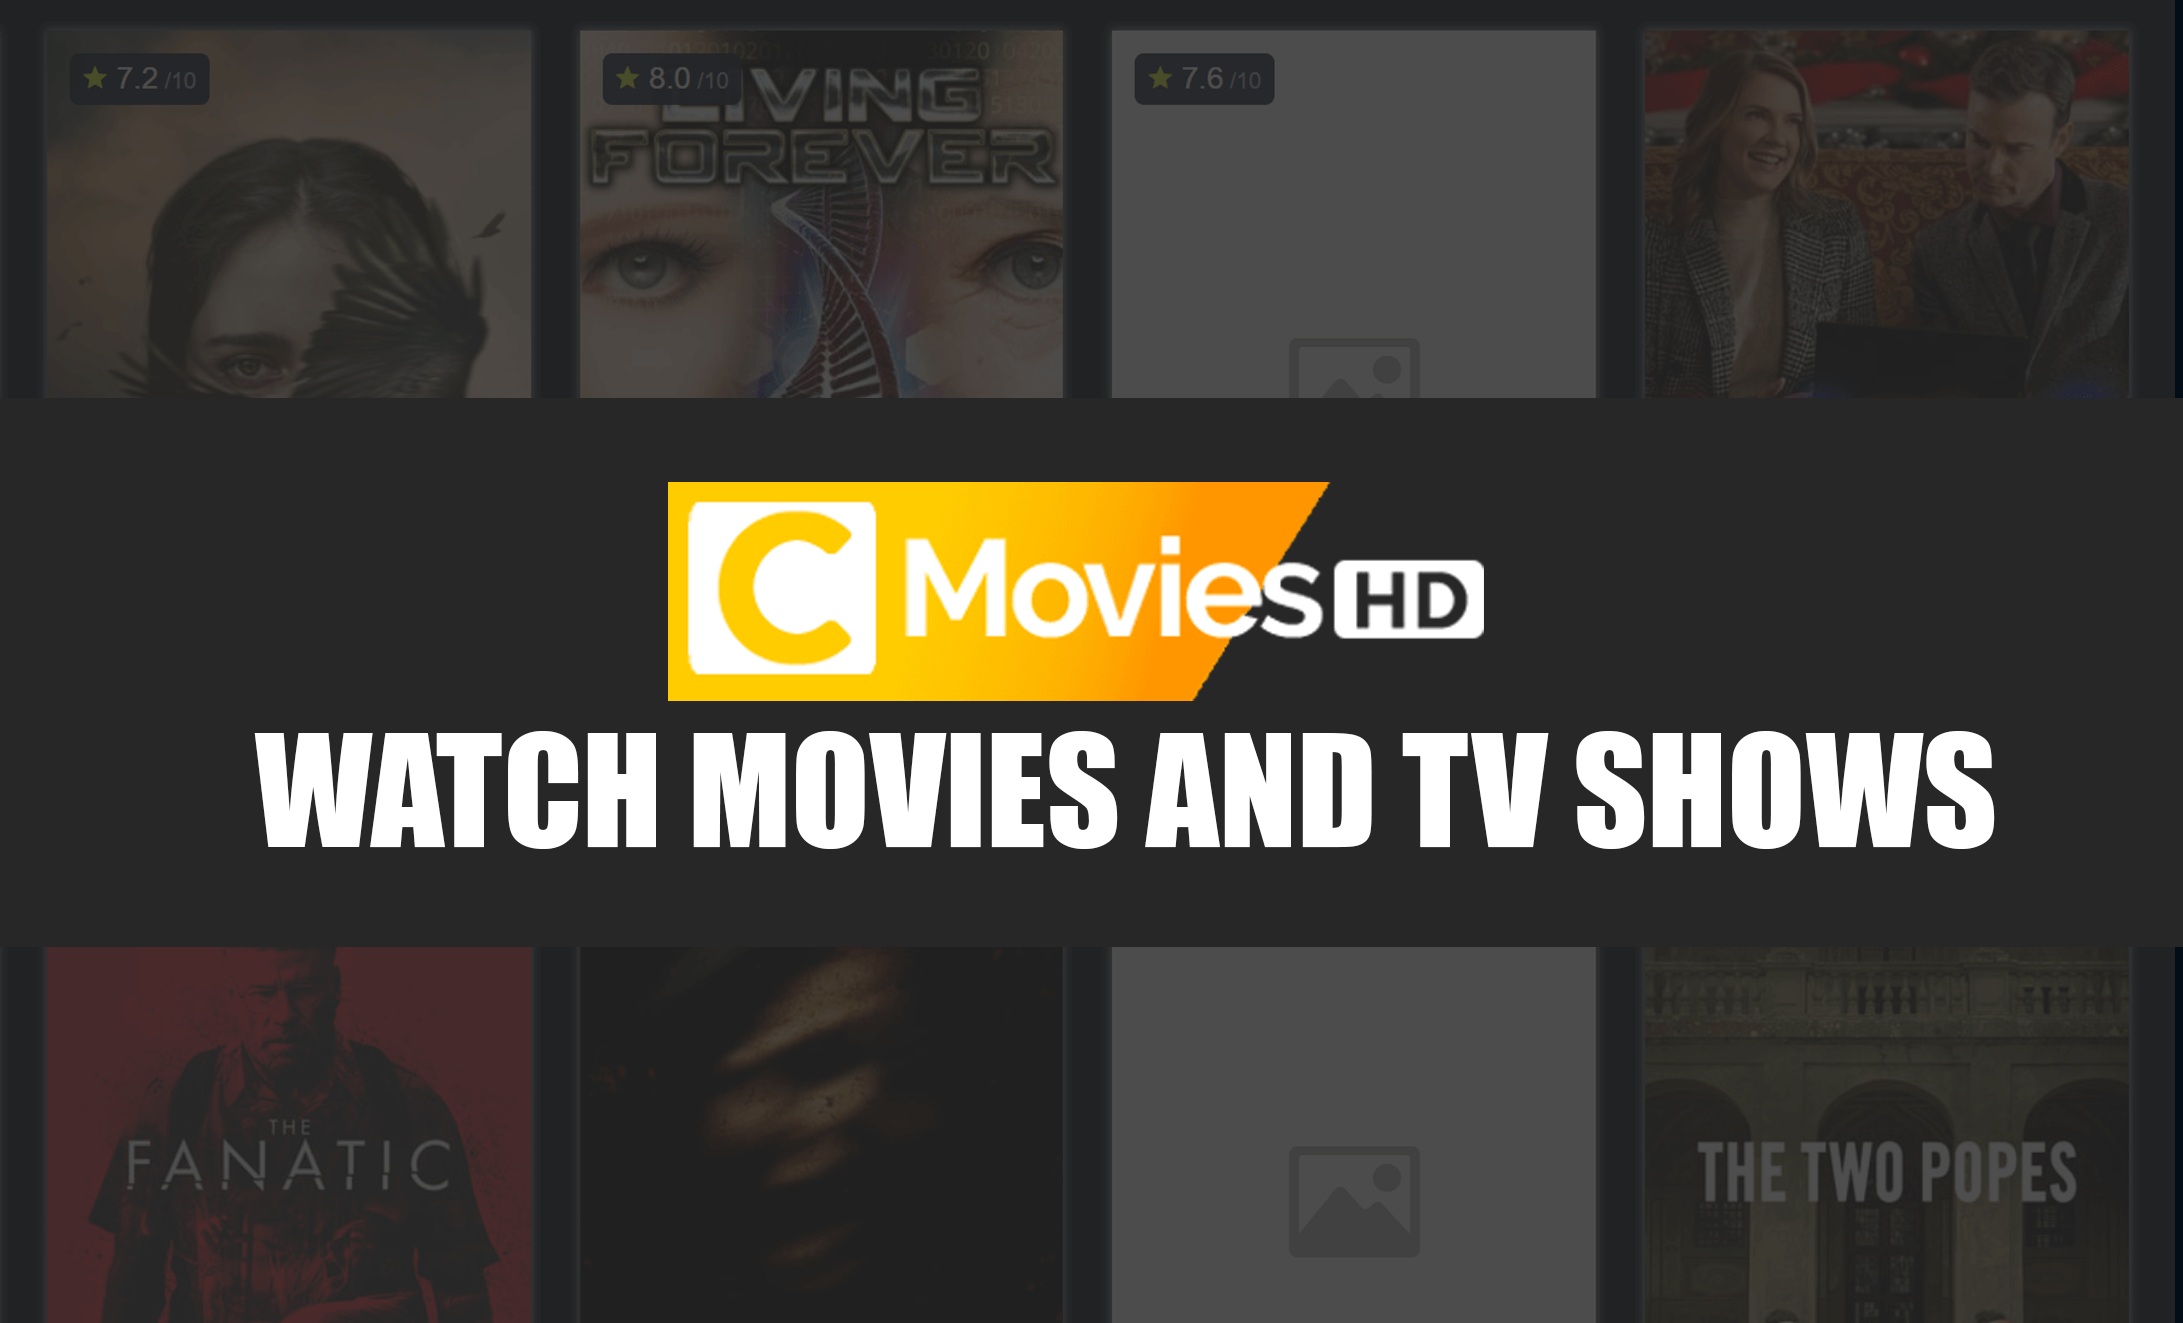 Cmovies 2020 – Illegal HD Movies Download Website